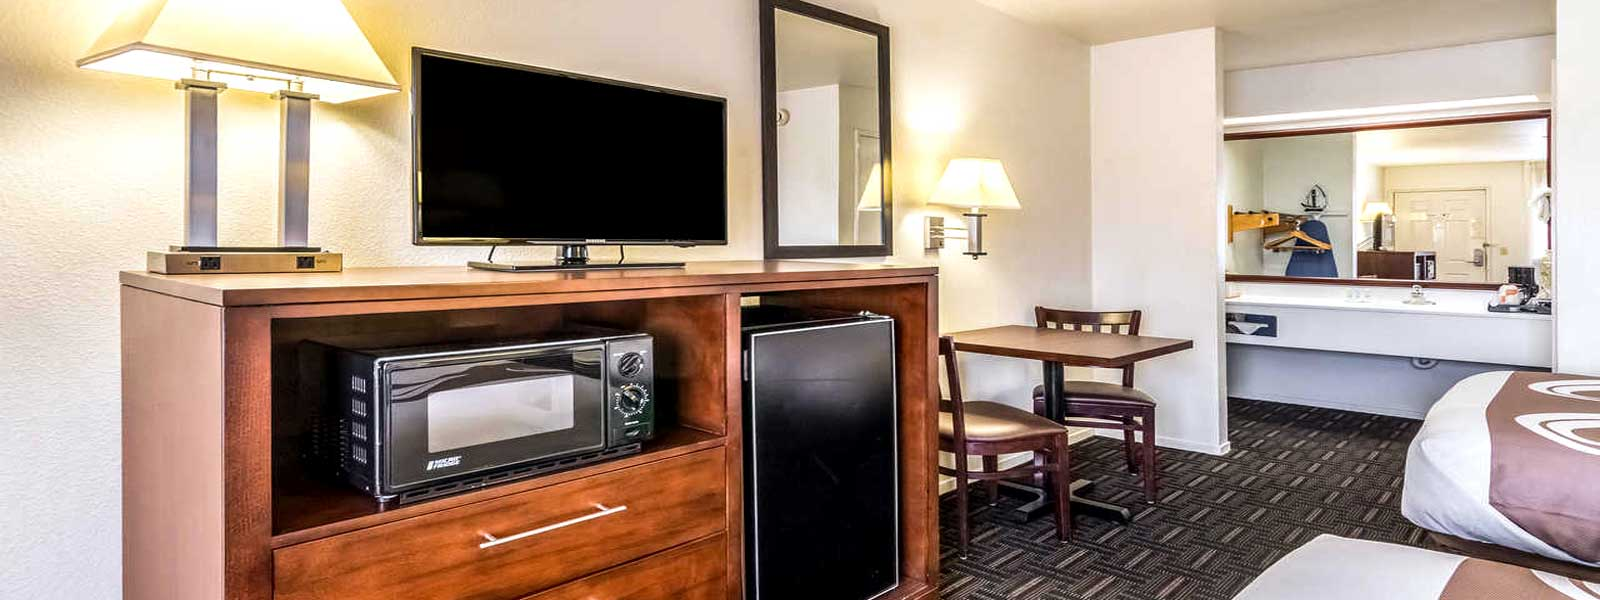 hotels in fresno ca quality inn downtown state university fresno